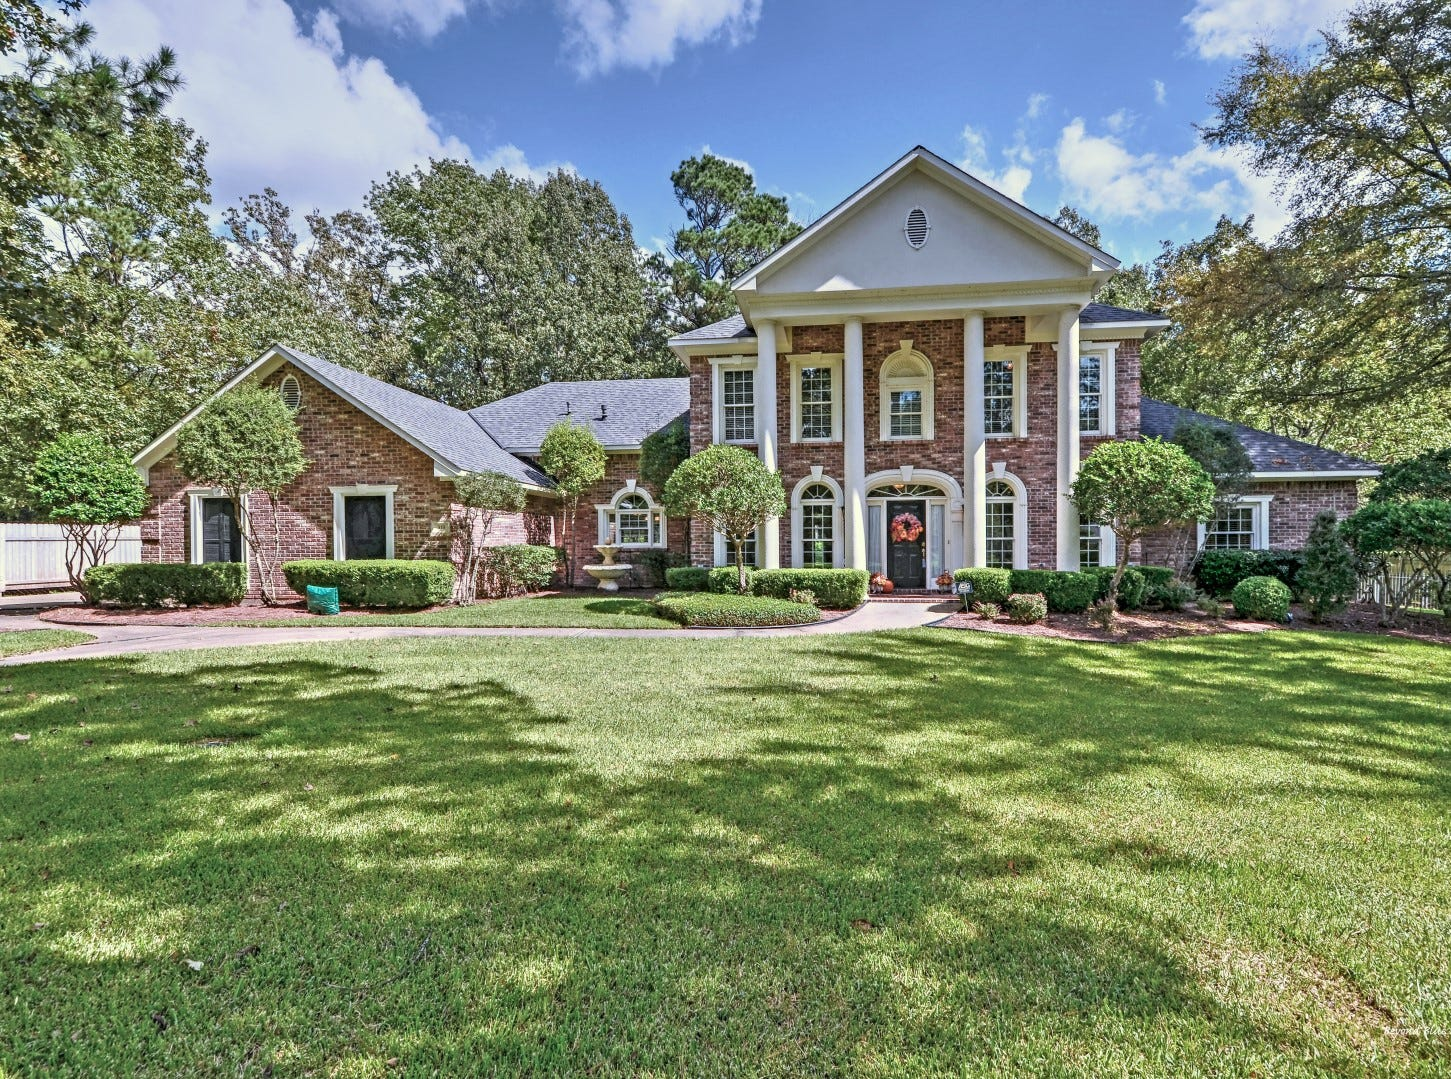 319 Bringier Place, Shreveport  Price: $629,000  Details: 4 bedrooms, 4 bathrooms, 4,000 square feet  Special features: Executive home in Southern Trace full of Southern charm, soaring ceilings, lush landscaping.   Contact: Mischa Angel, 572-7150